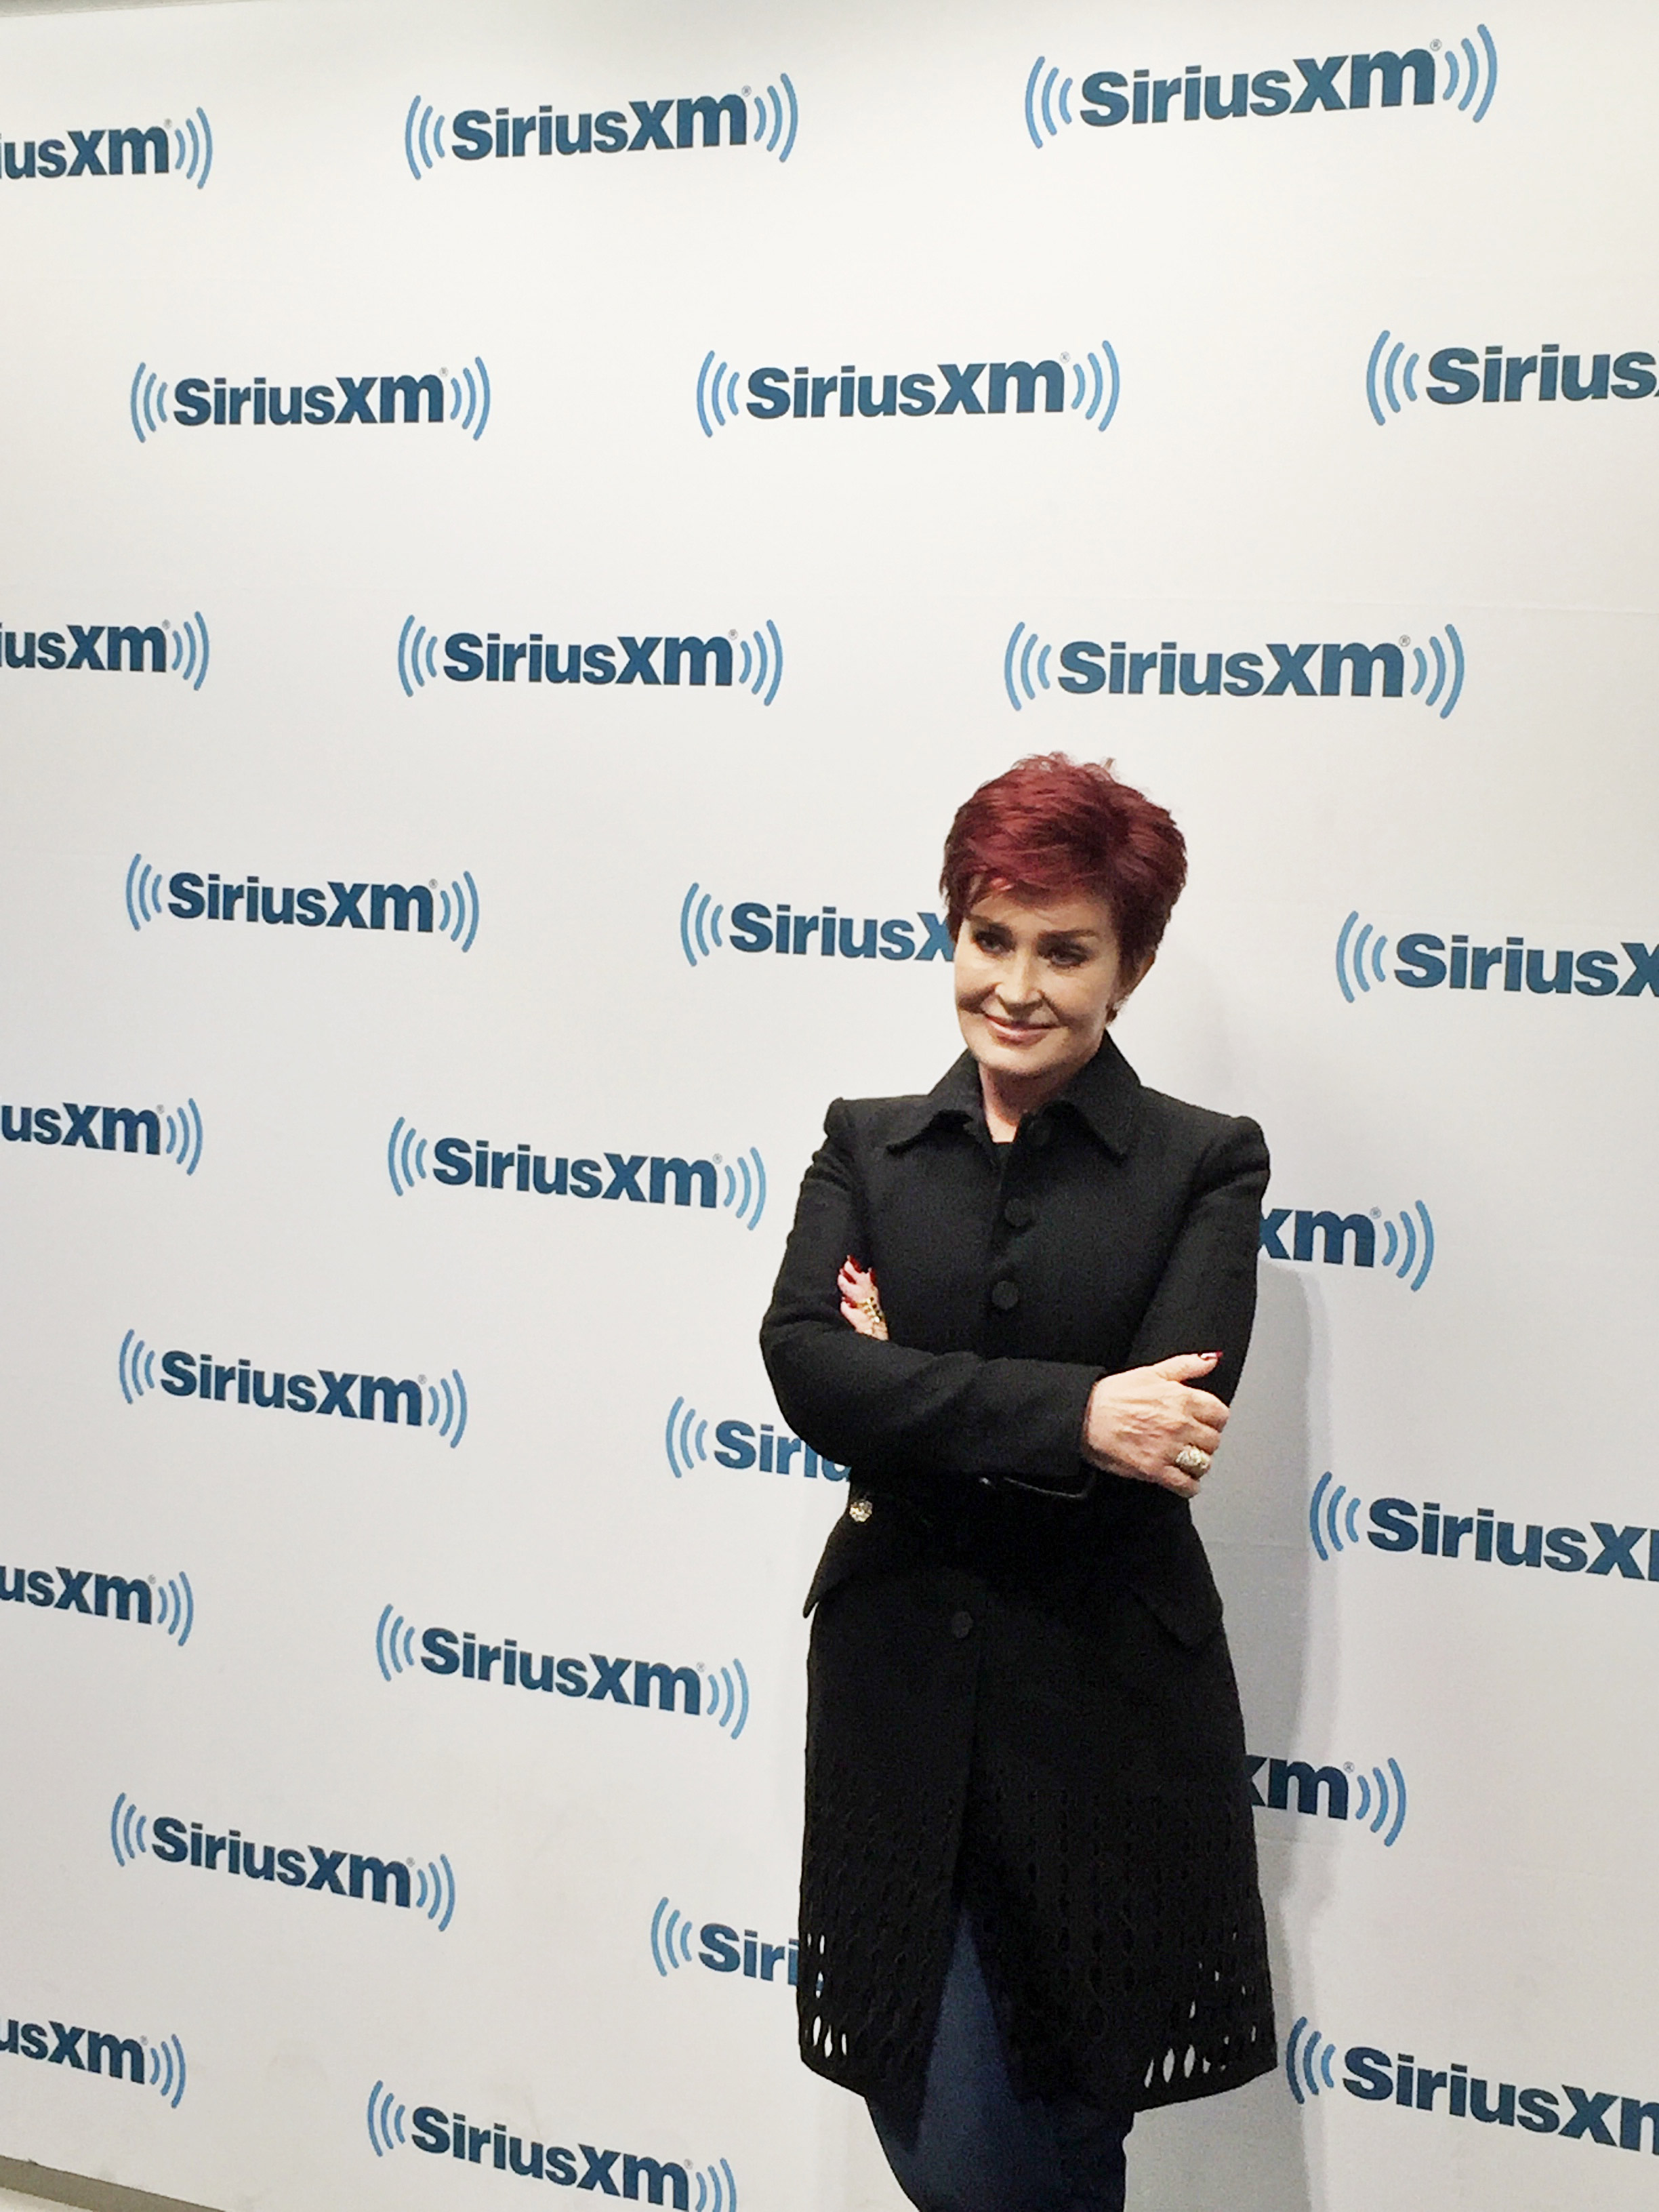 Sharon Osbourne visited SiriusXM Radio